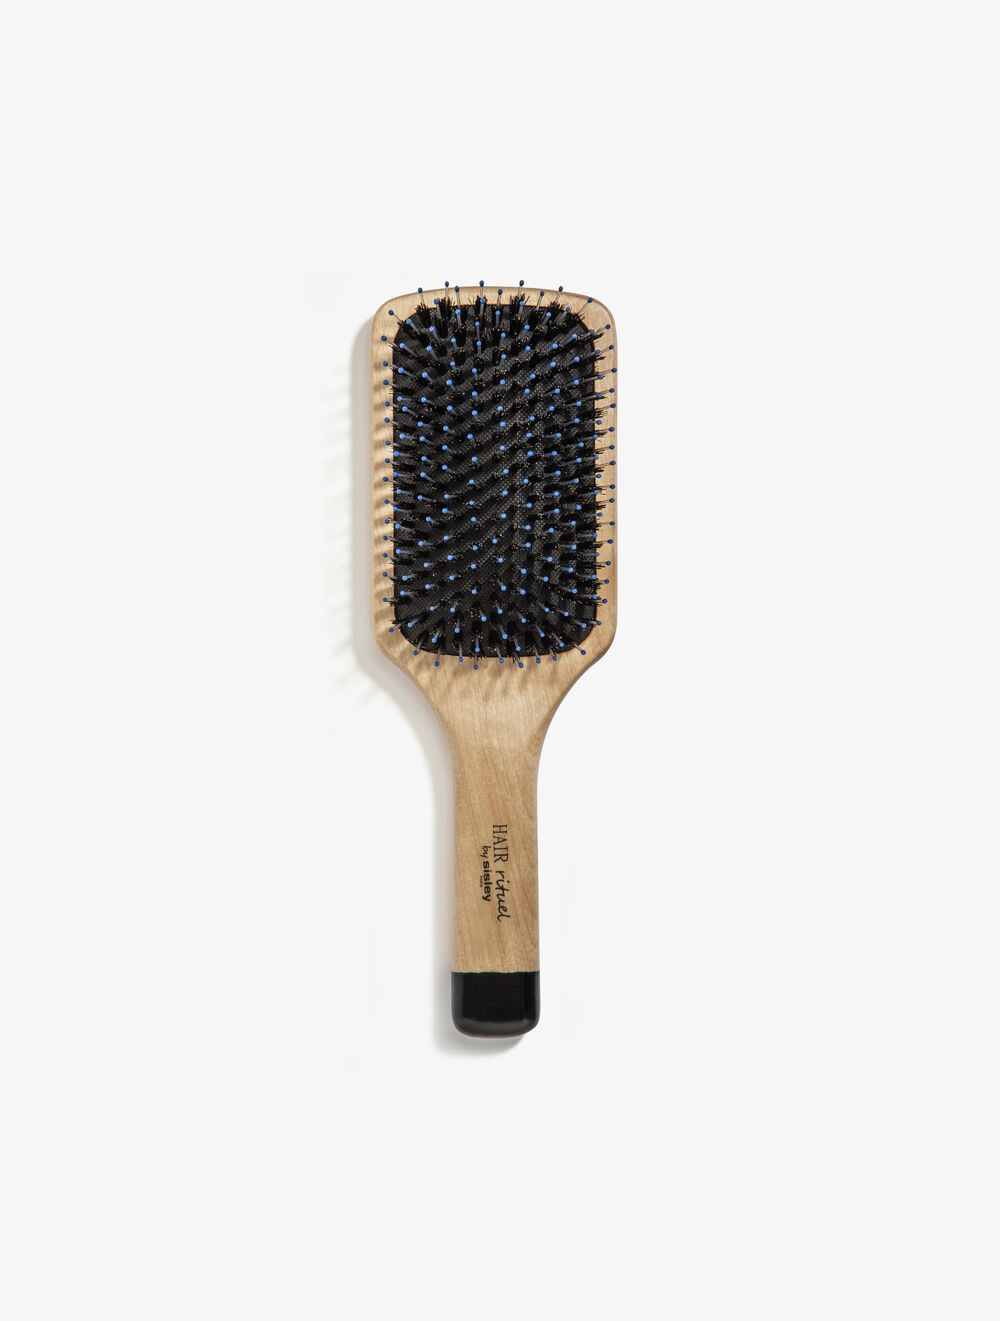 The Radiance Brush